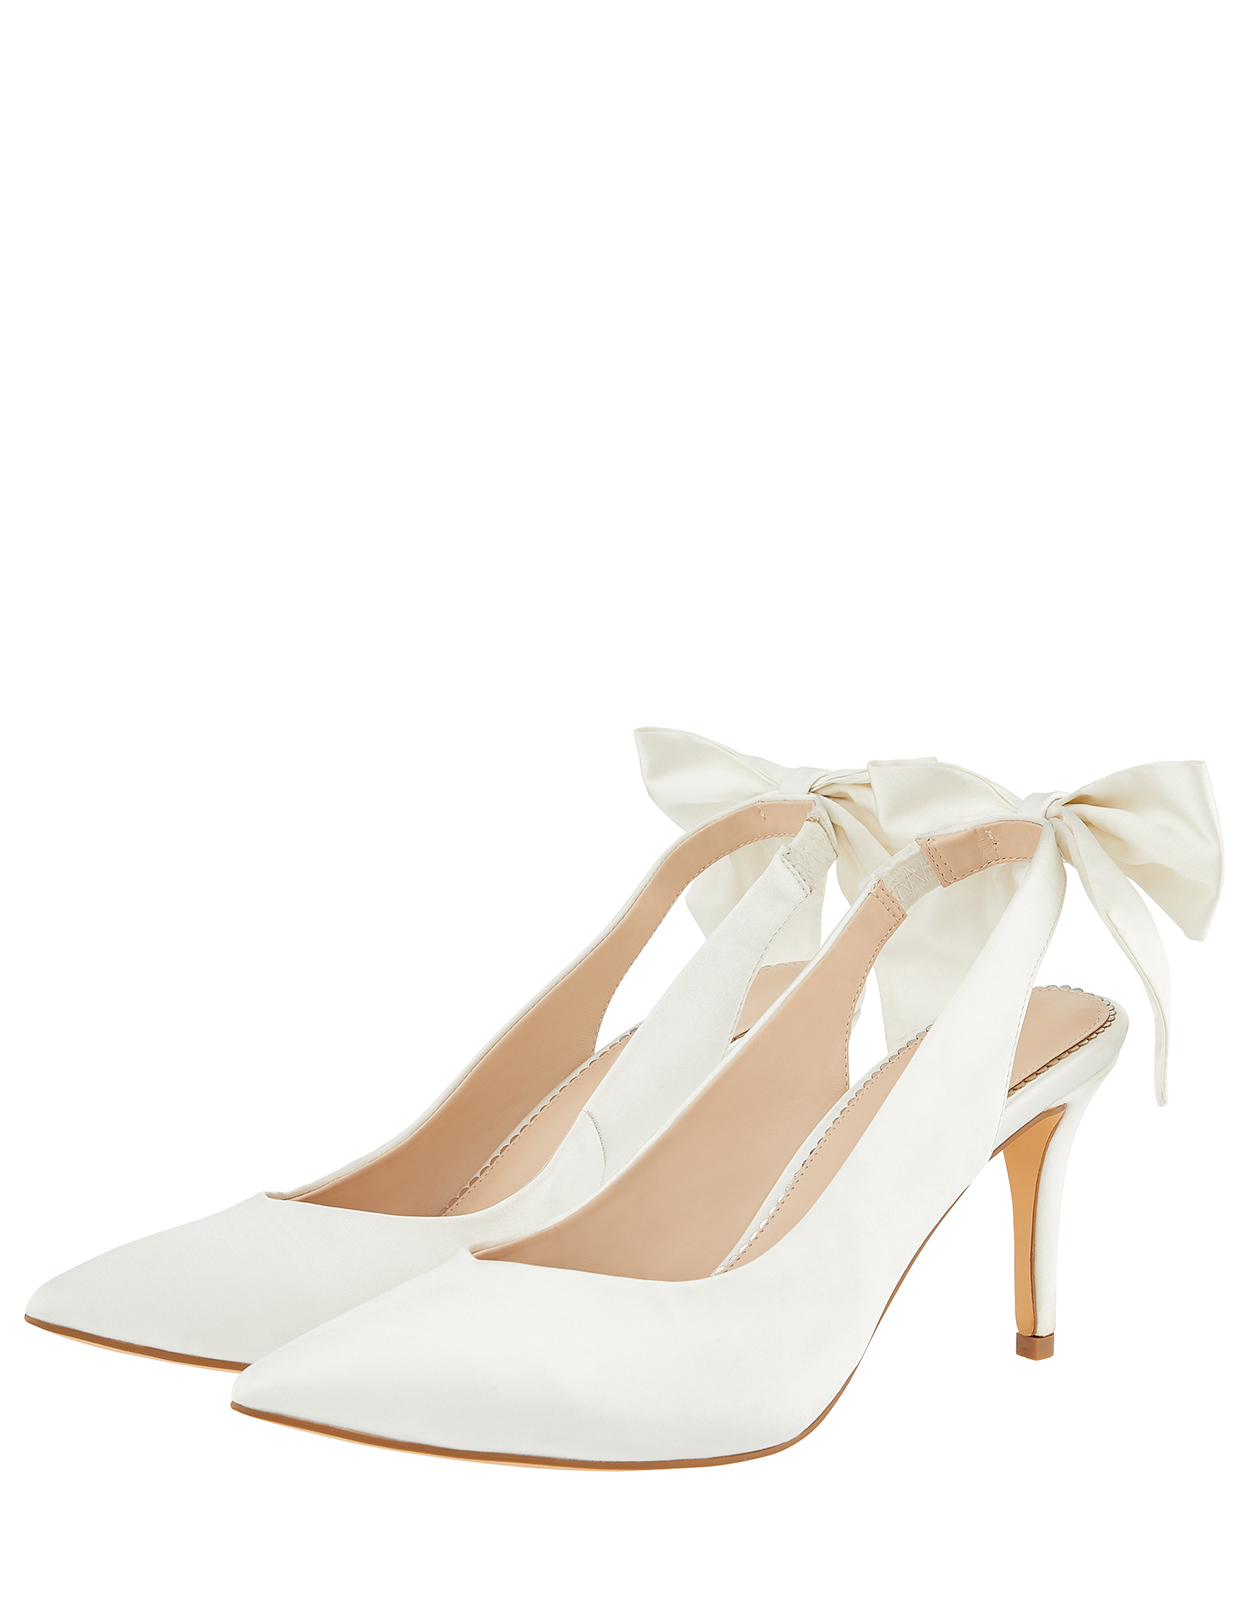 Monsoon BEA BOW POINTED SLING BACK BRIDAL SHOES